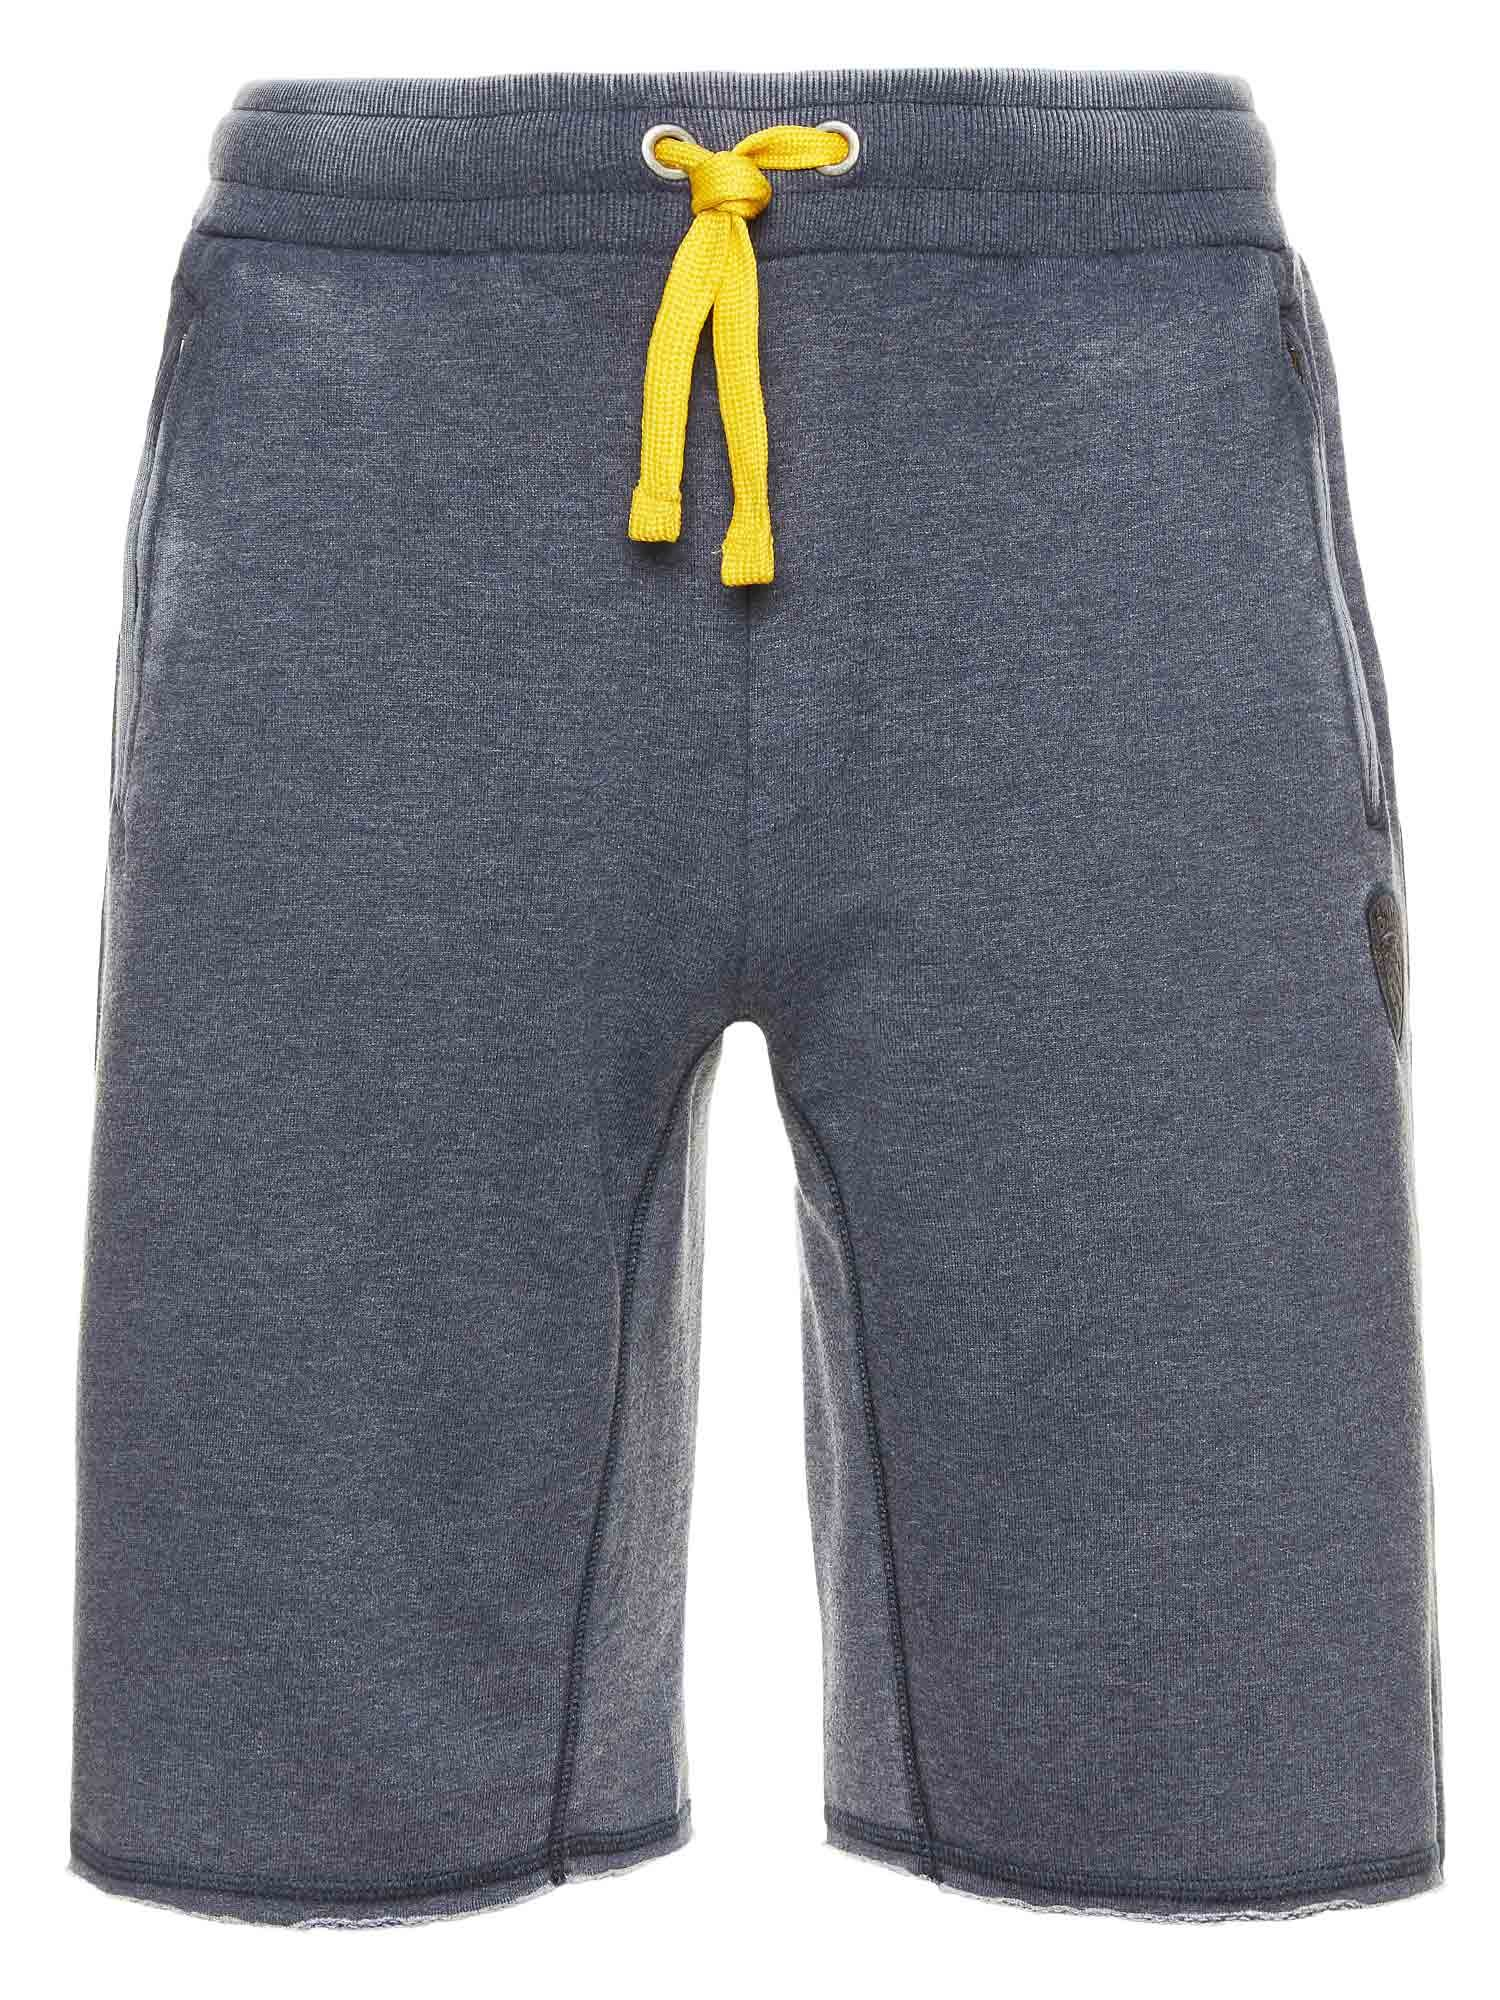 Blauer - SHORT SWEATPANTS - Midnight Blue - Blauer